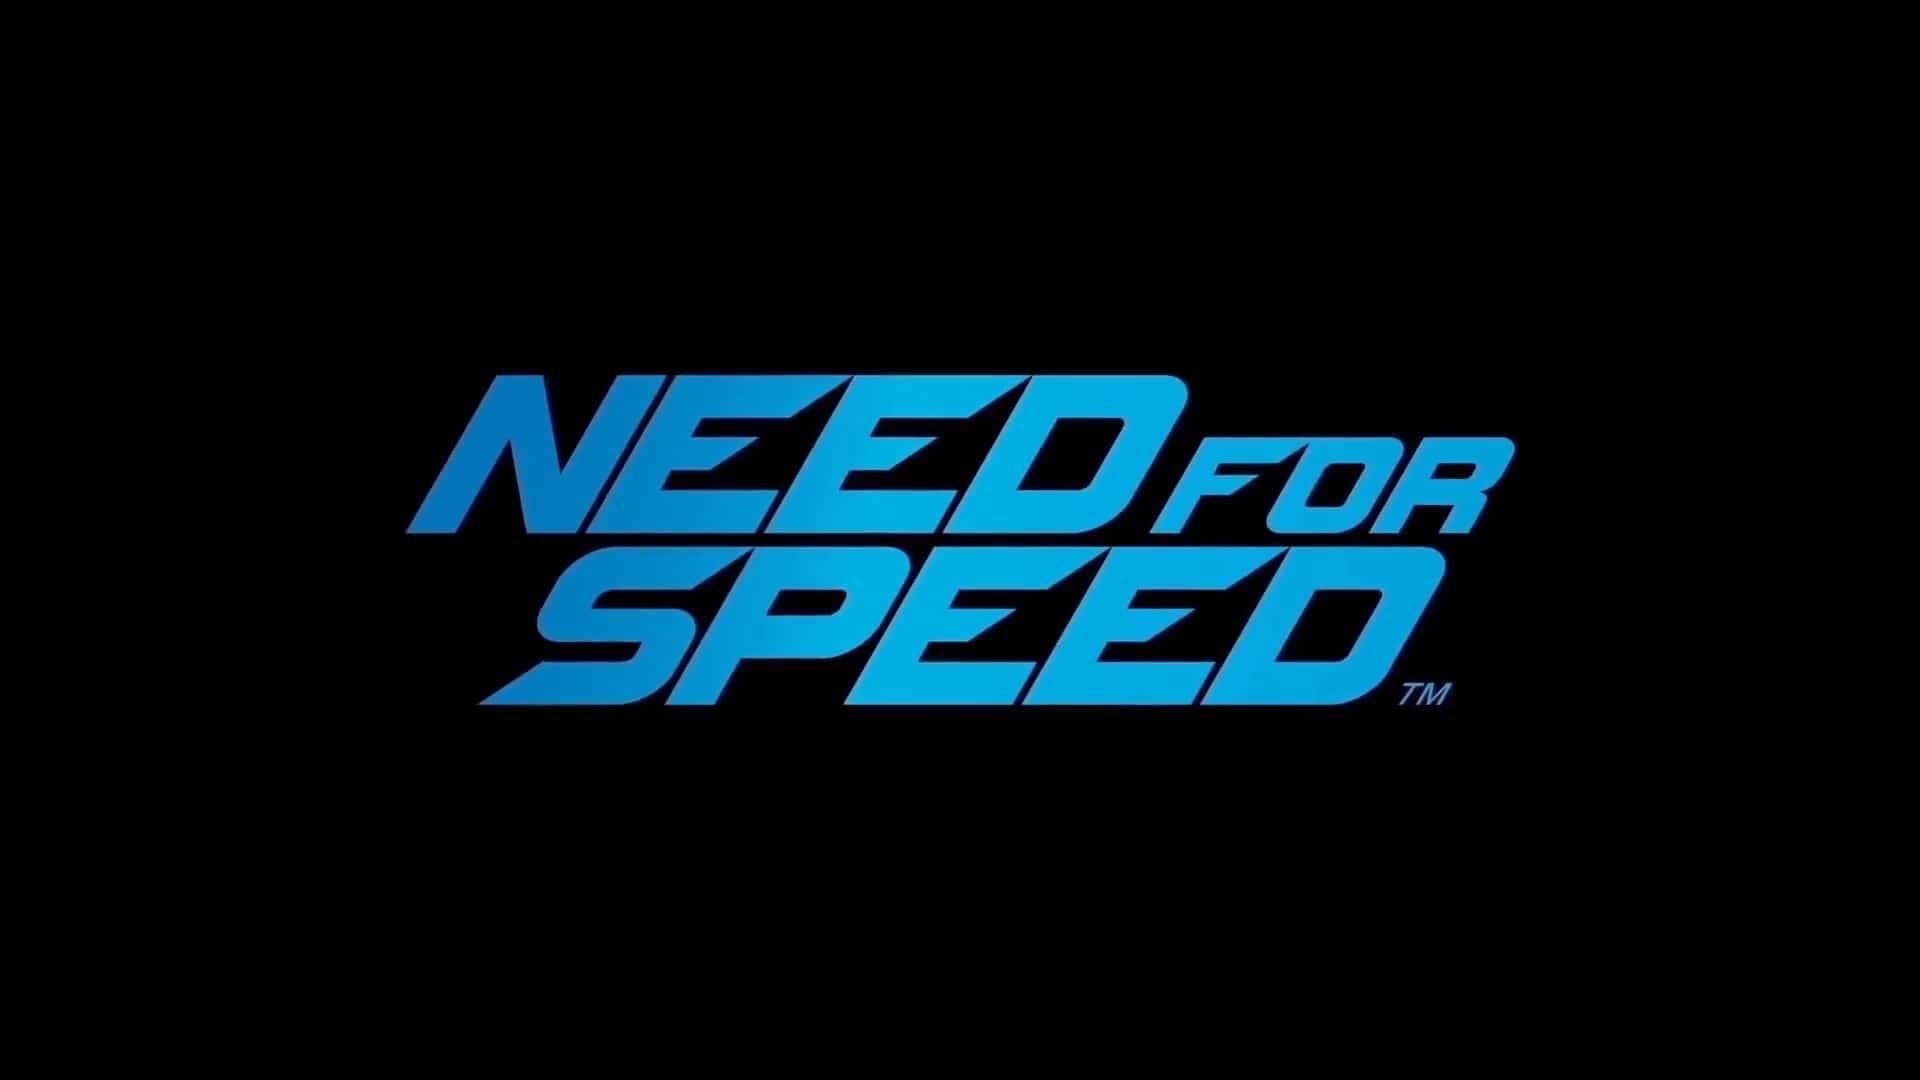 need for speed 2015 download torrent kickass